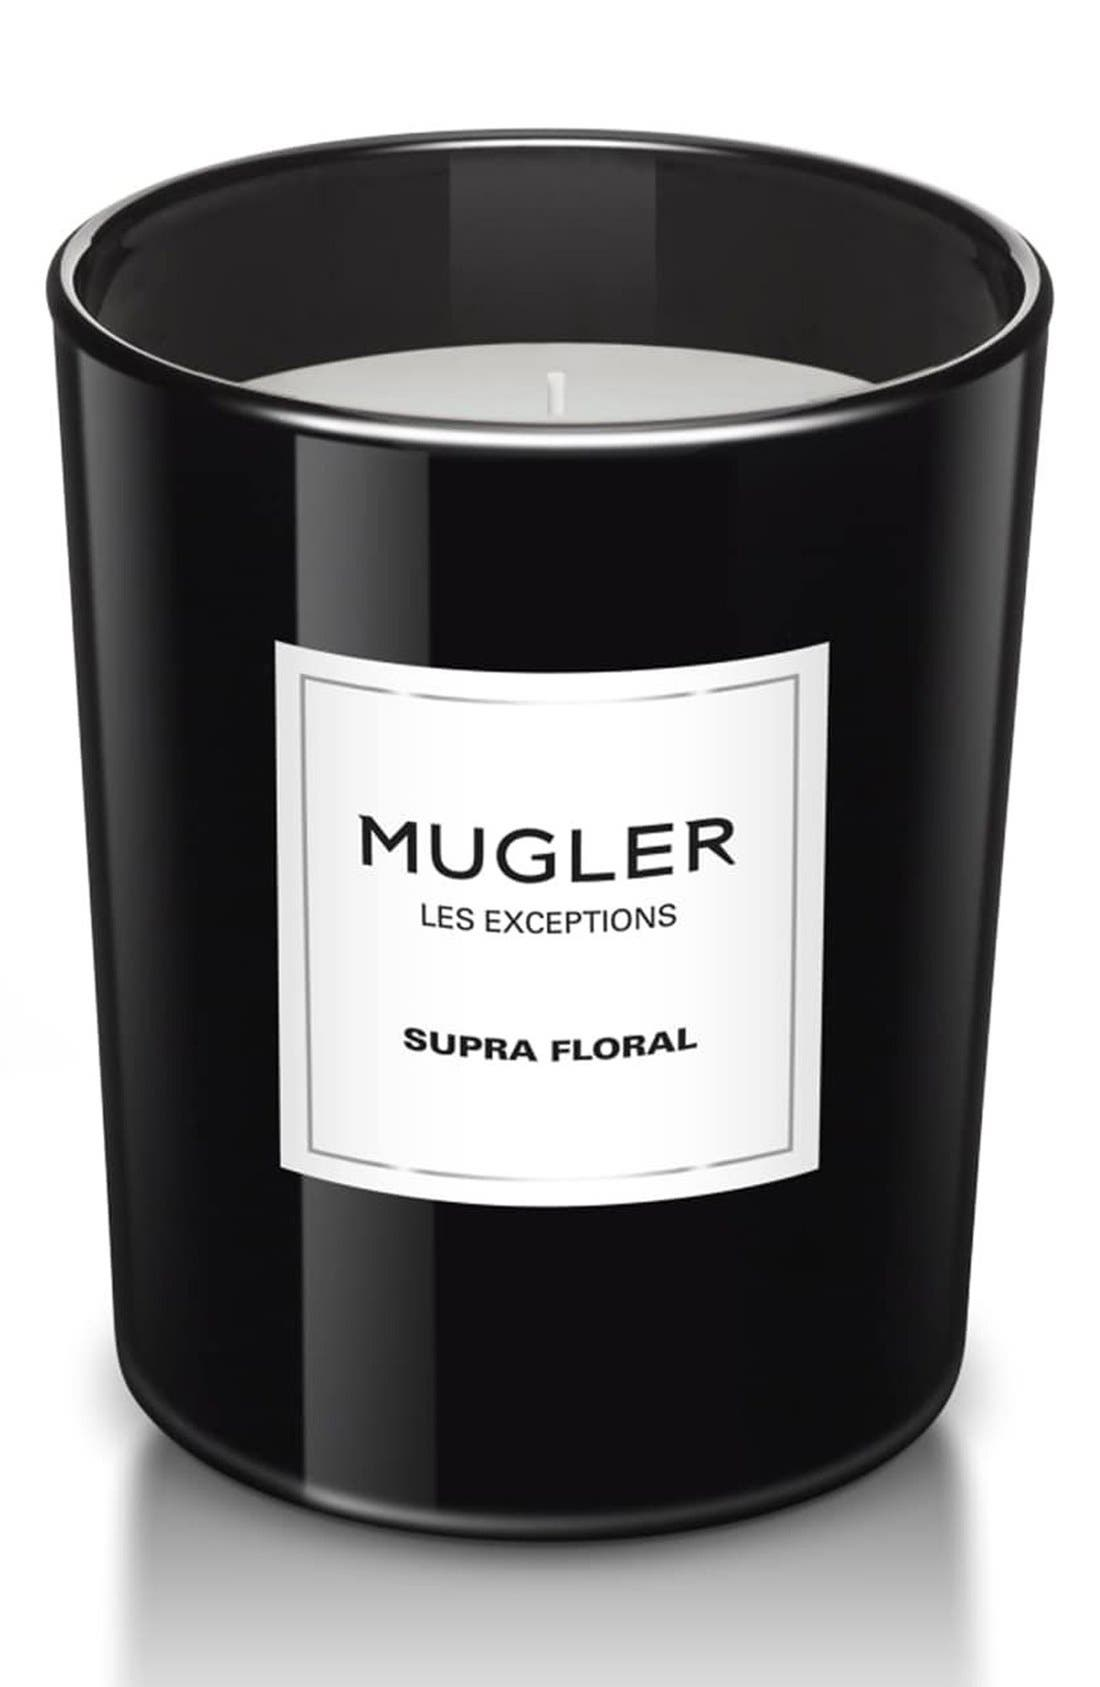 THIERRY MUGLER Mugler 'Les Exceptions - Supra Floral'